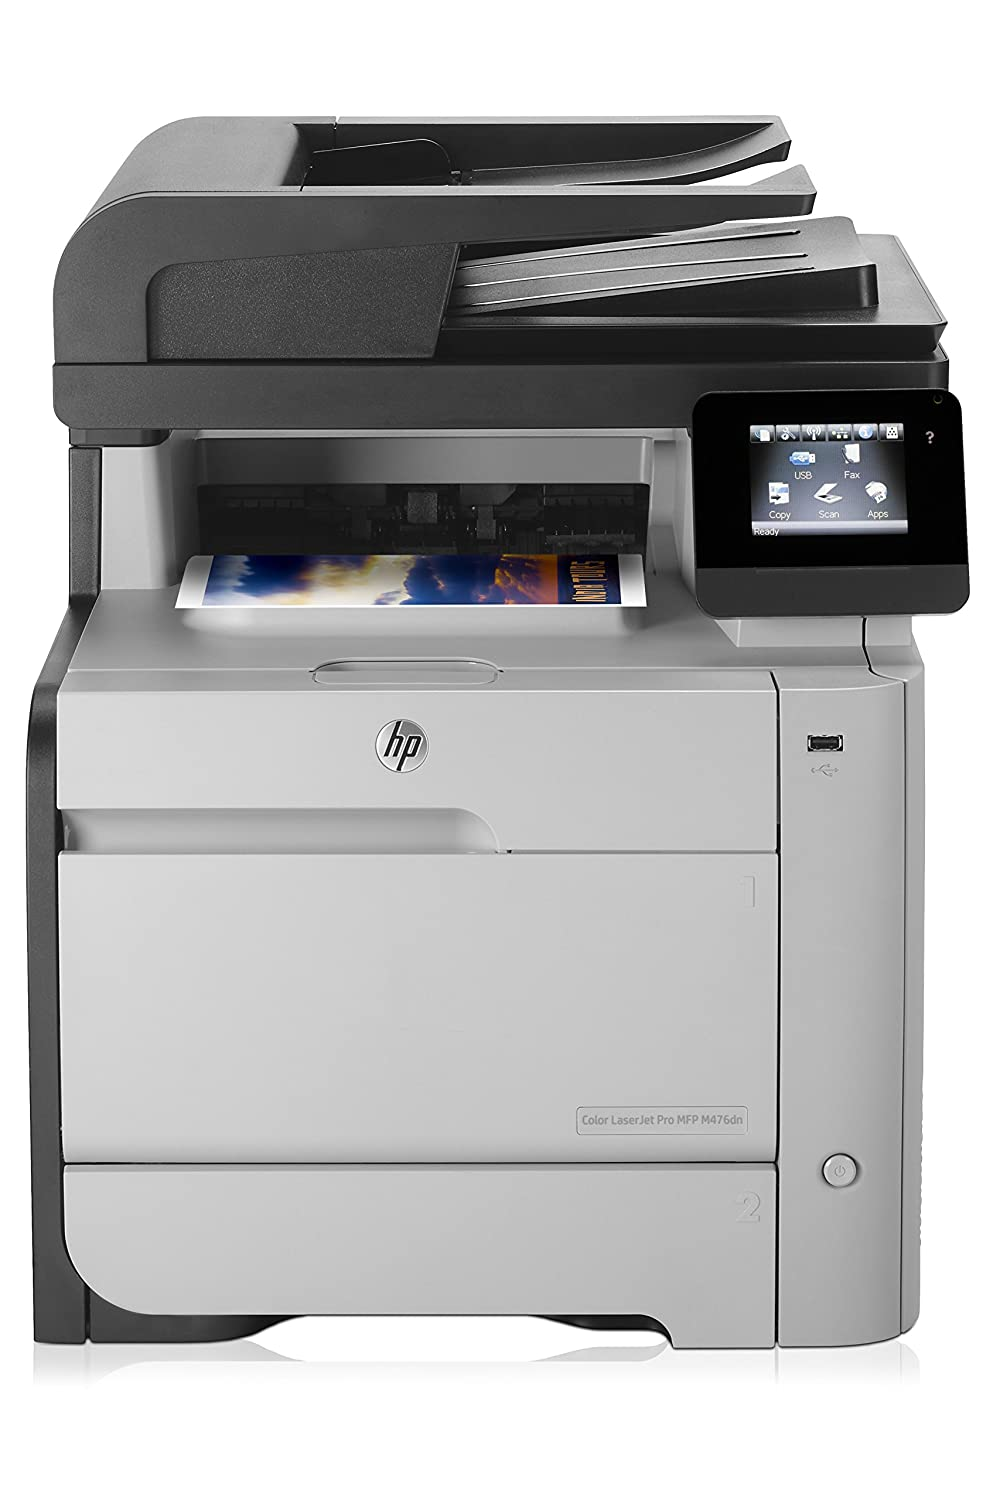 Amazon.com: HP M476dn Color Photo Printer with Scanner, Copier and ...